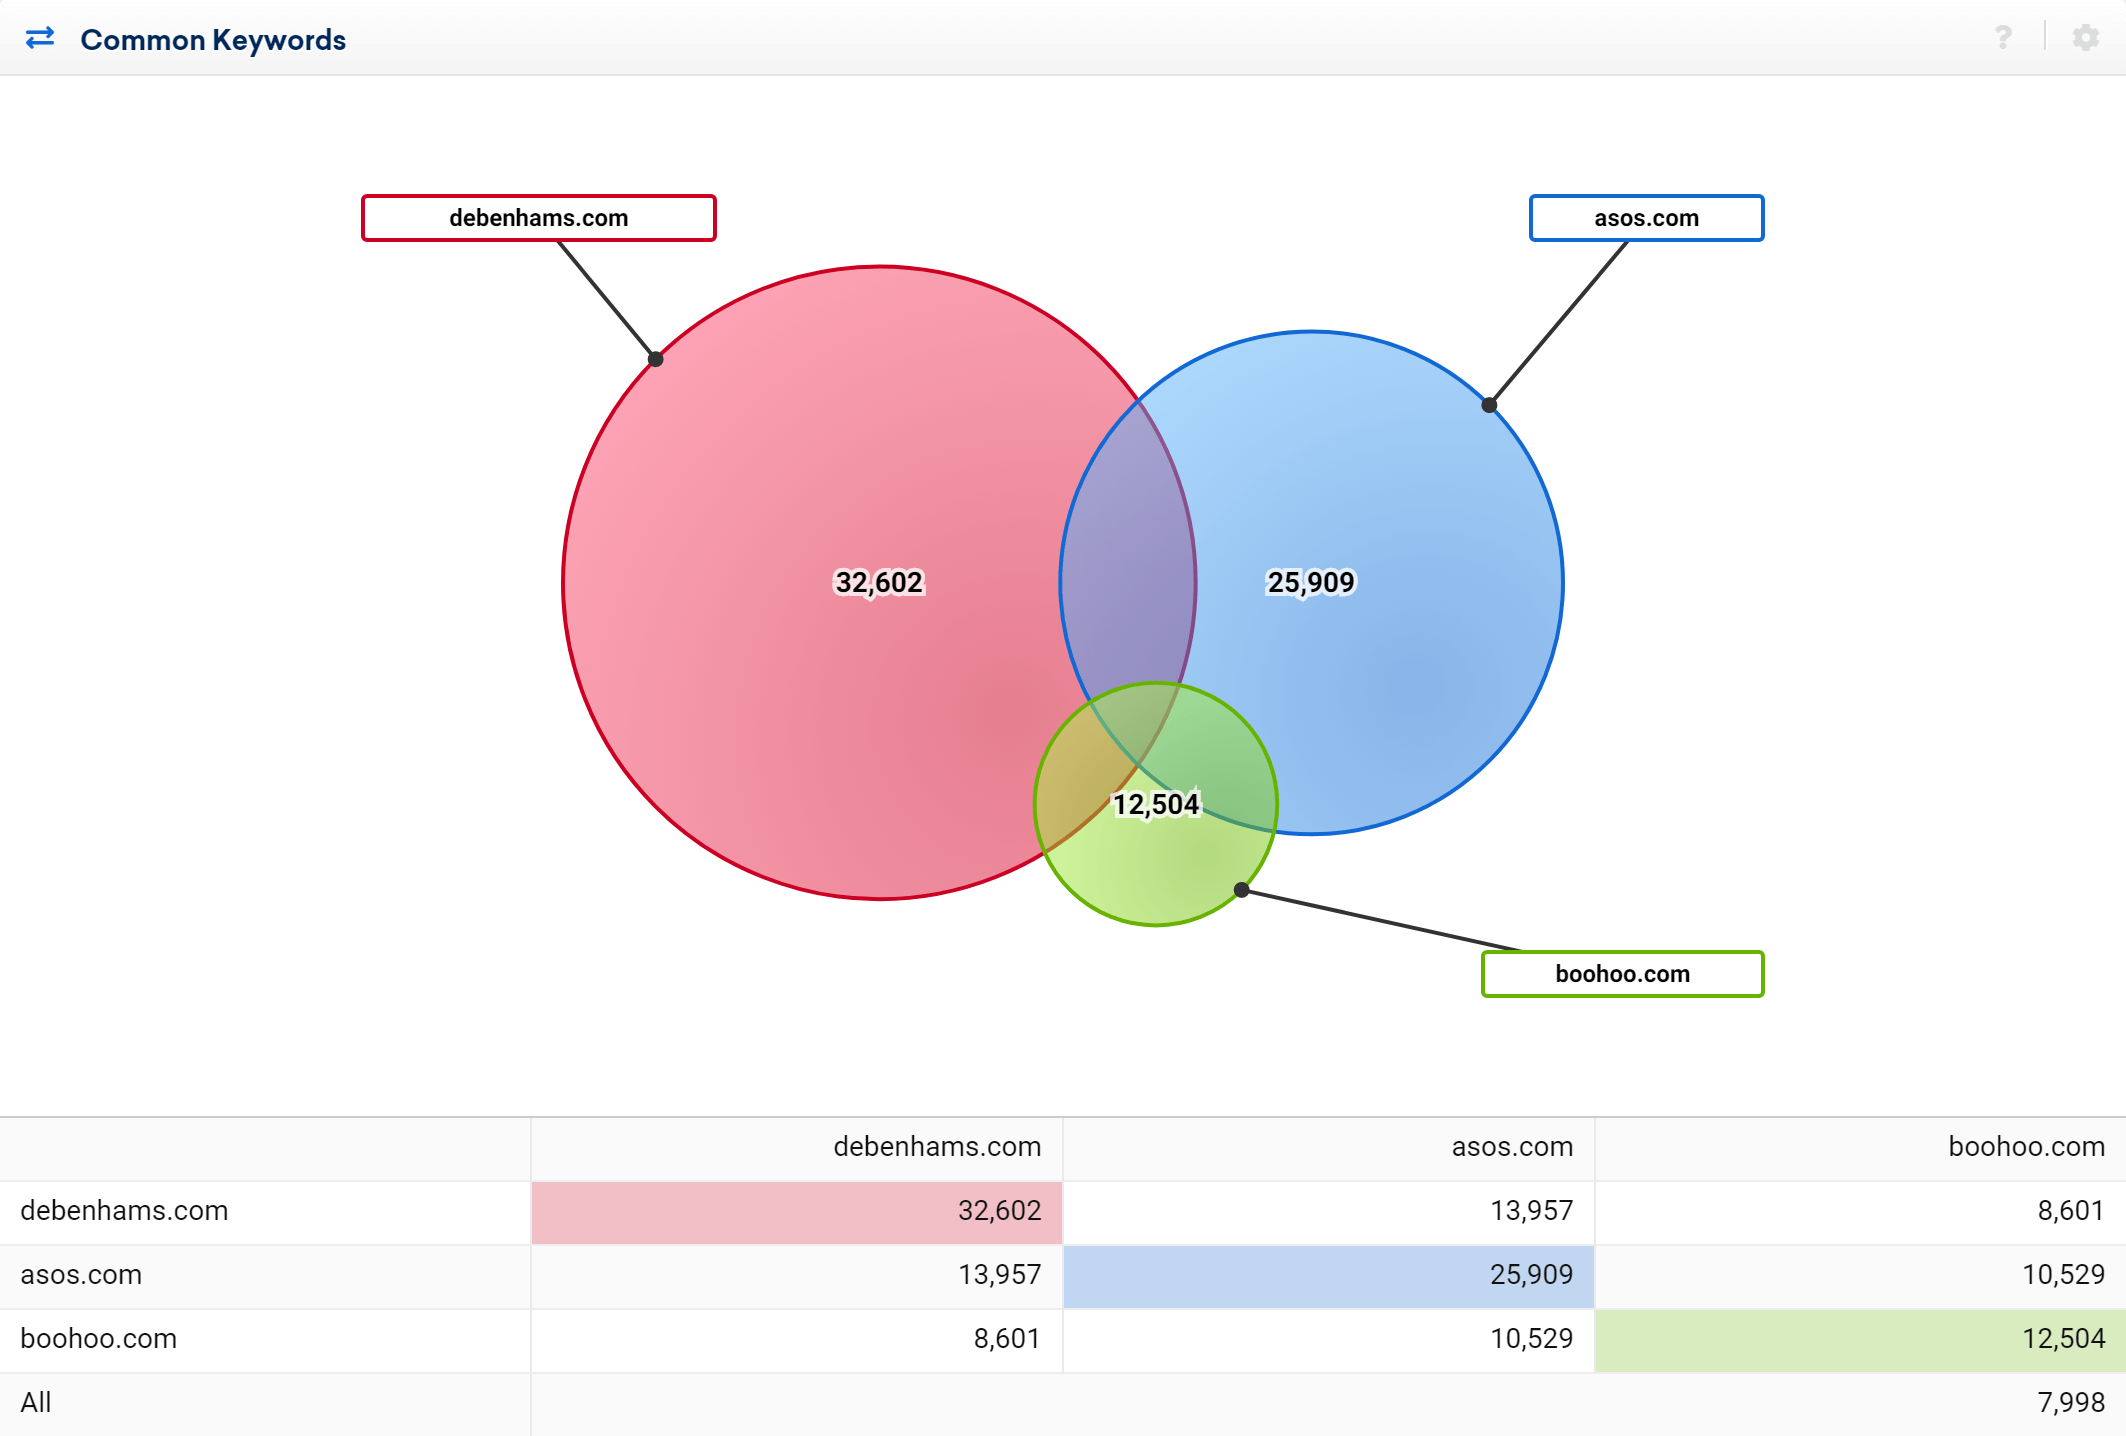 Comparison of common keywords for three domains in the SISTRIX Toolbox